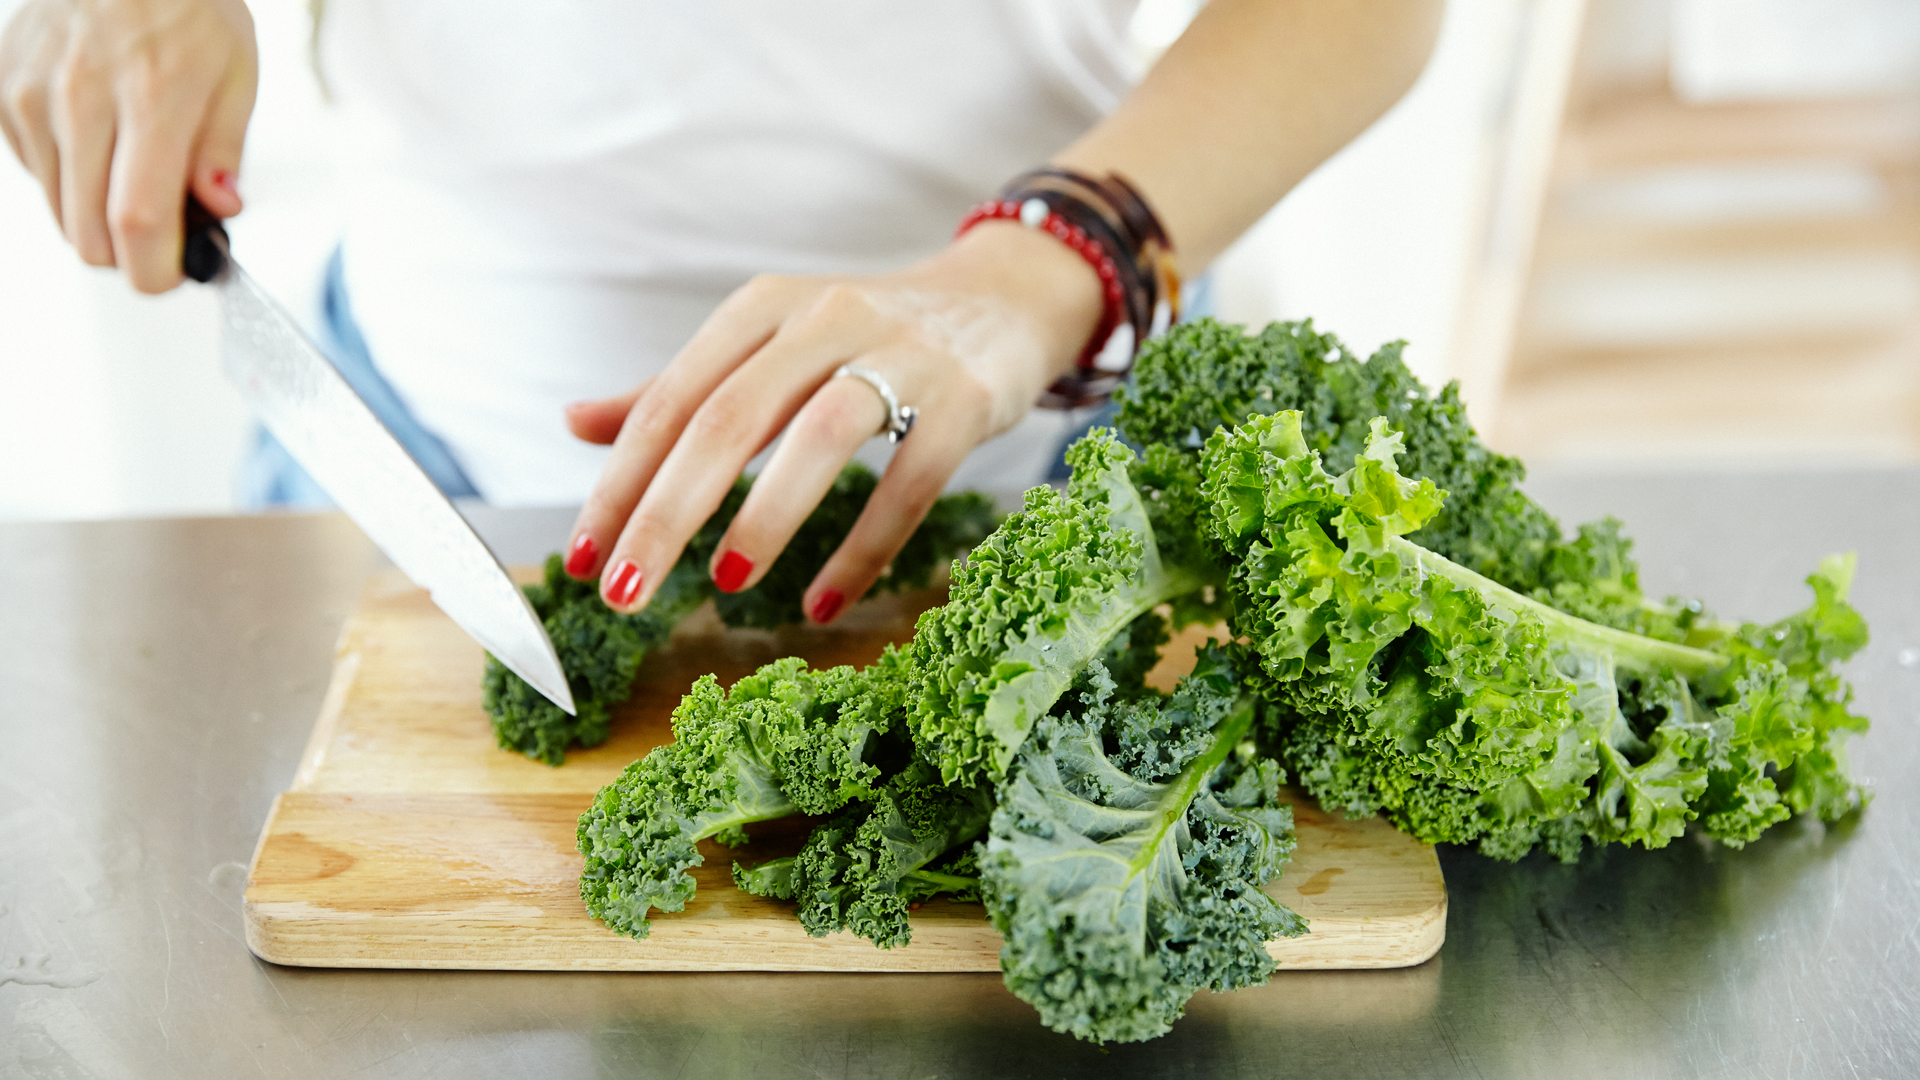 catherine-cuello-chopping-kale-for-her-sweet-potato-kale-and-chives-recipe-foodadit